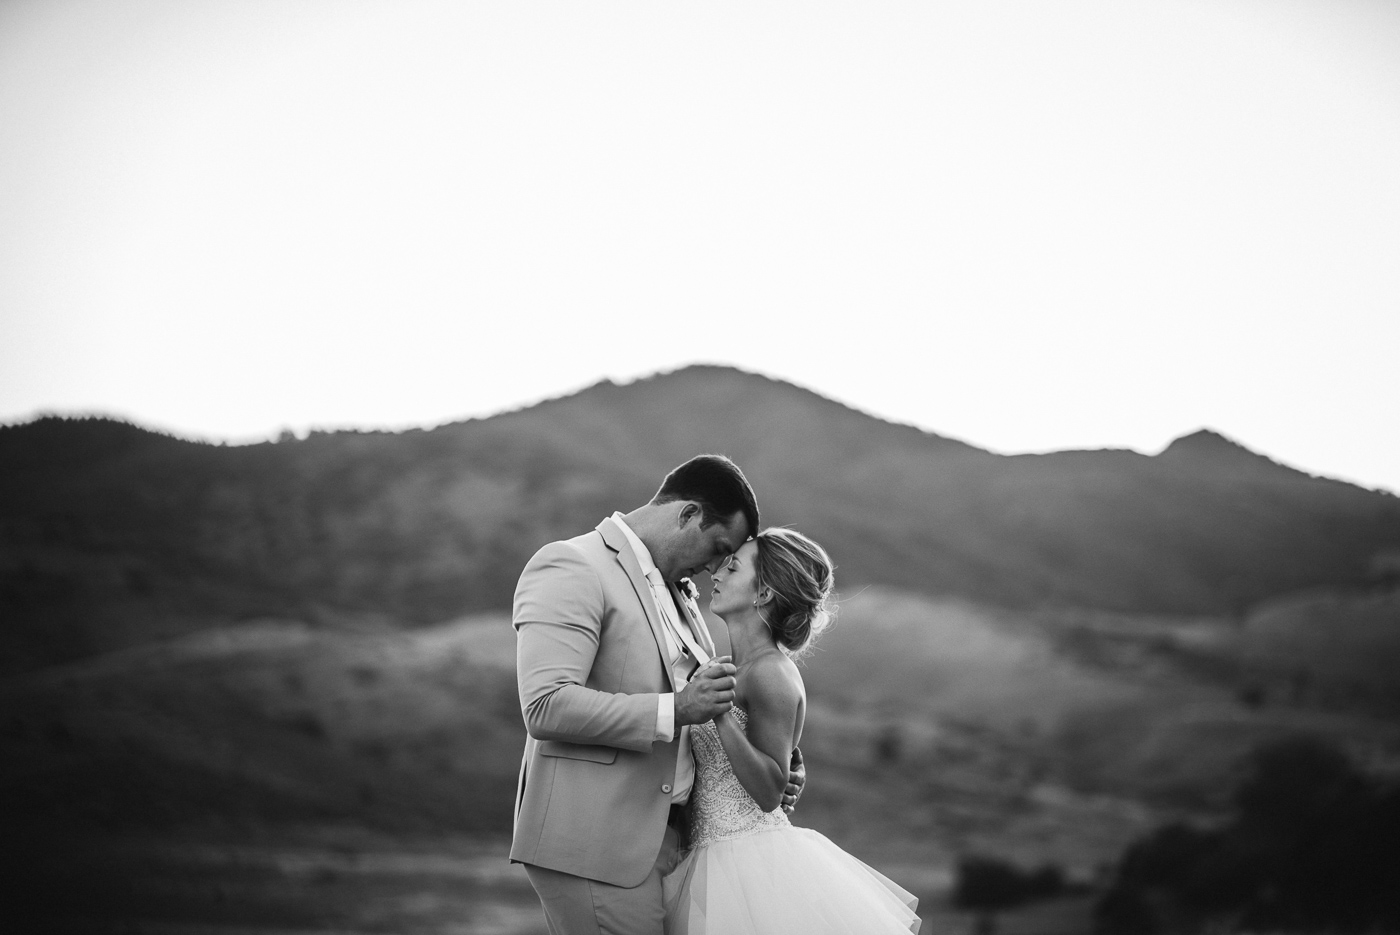 PHOCO2018TopPhotos_wedding_portrait-11.jpg